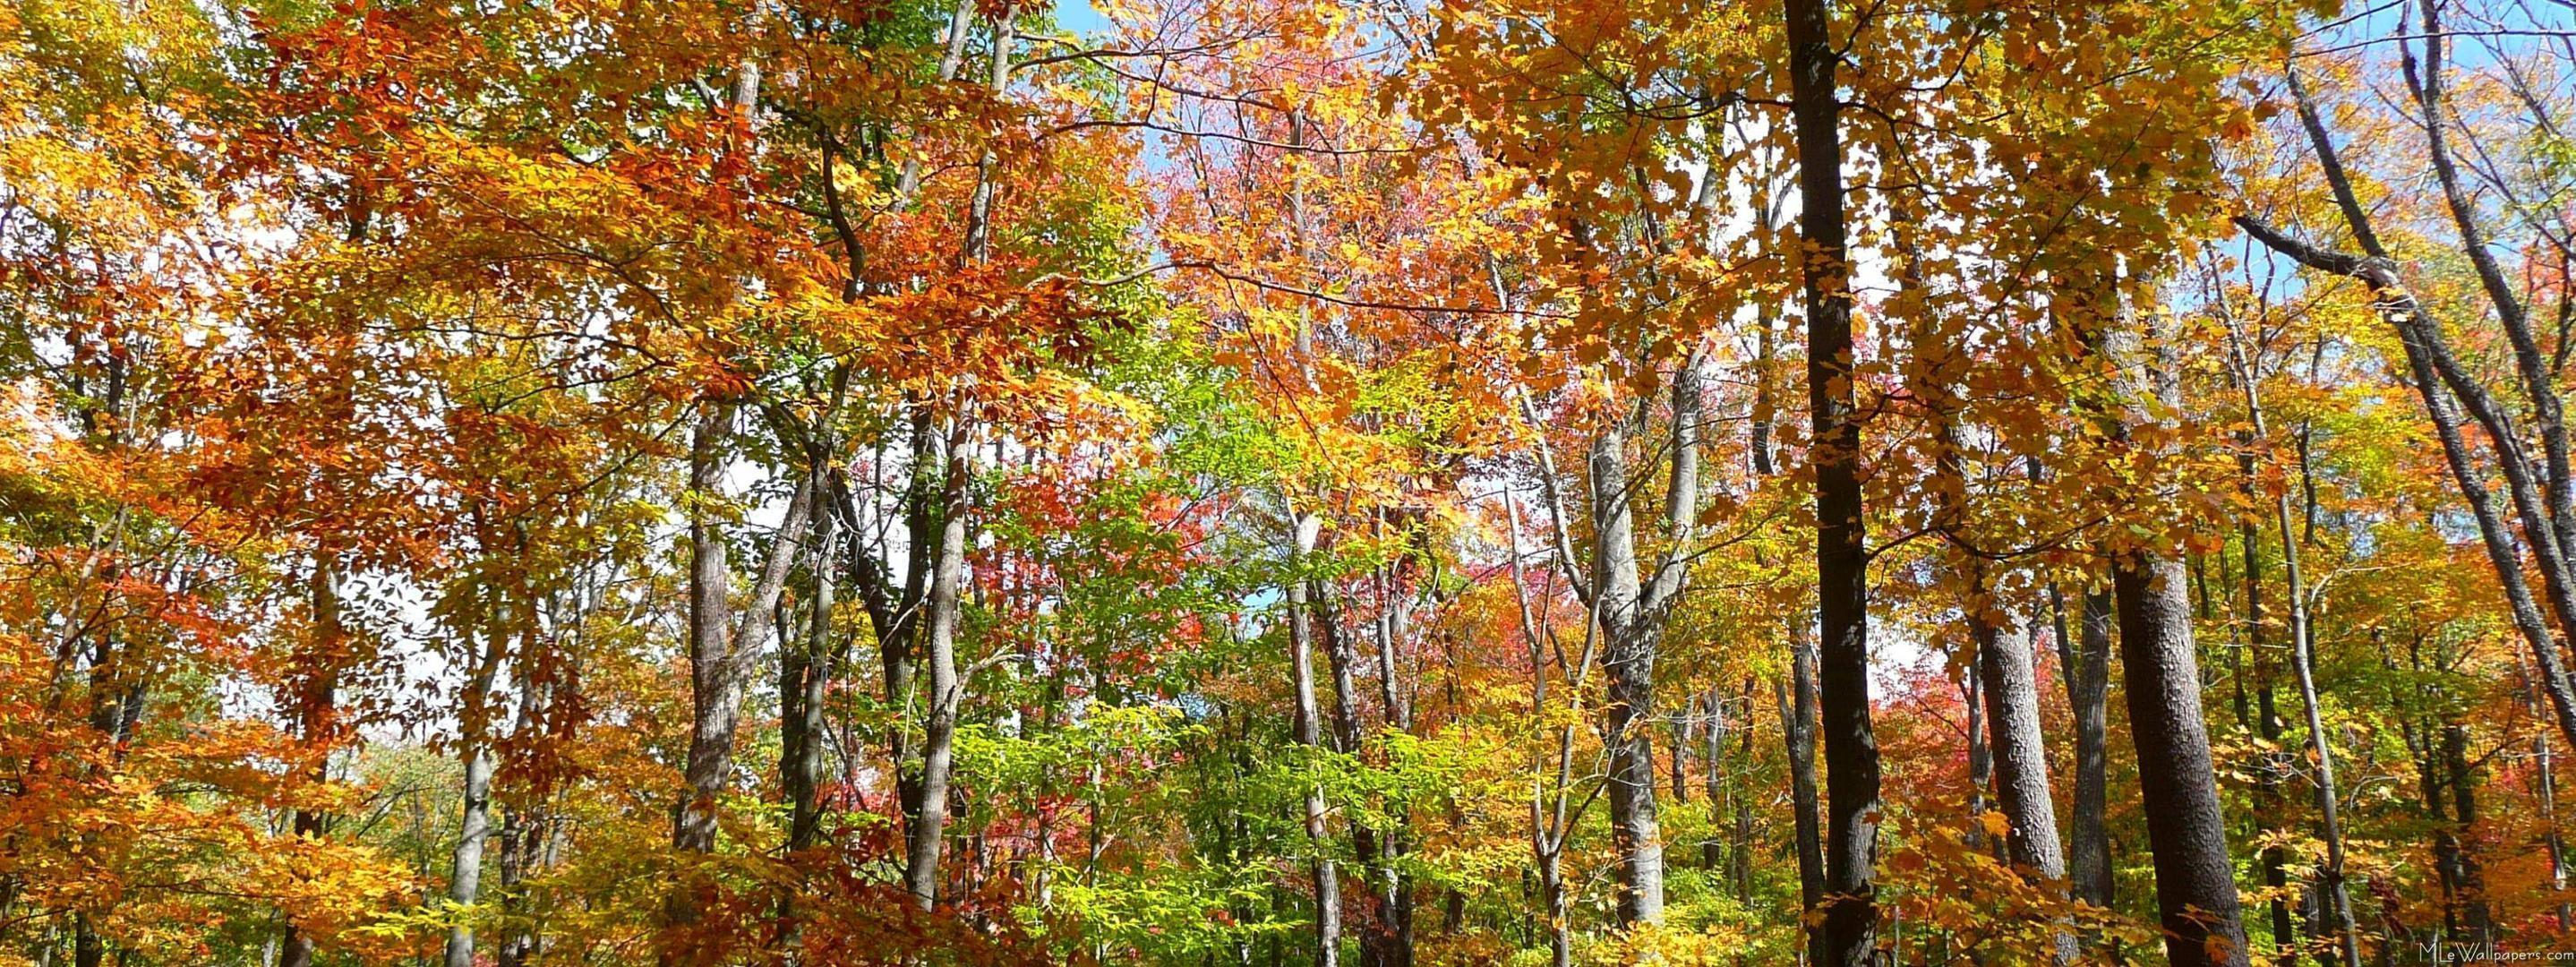 fall forest wallpapers wallpaper cave